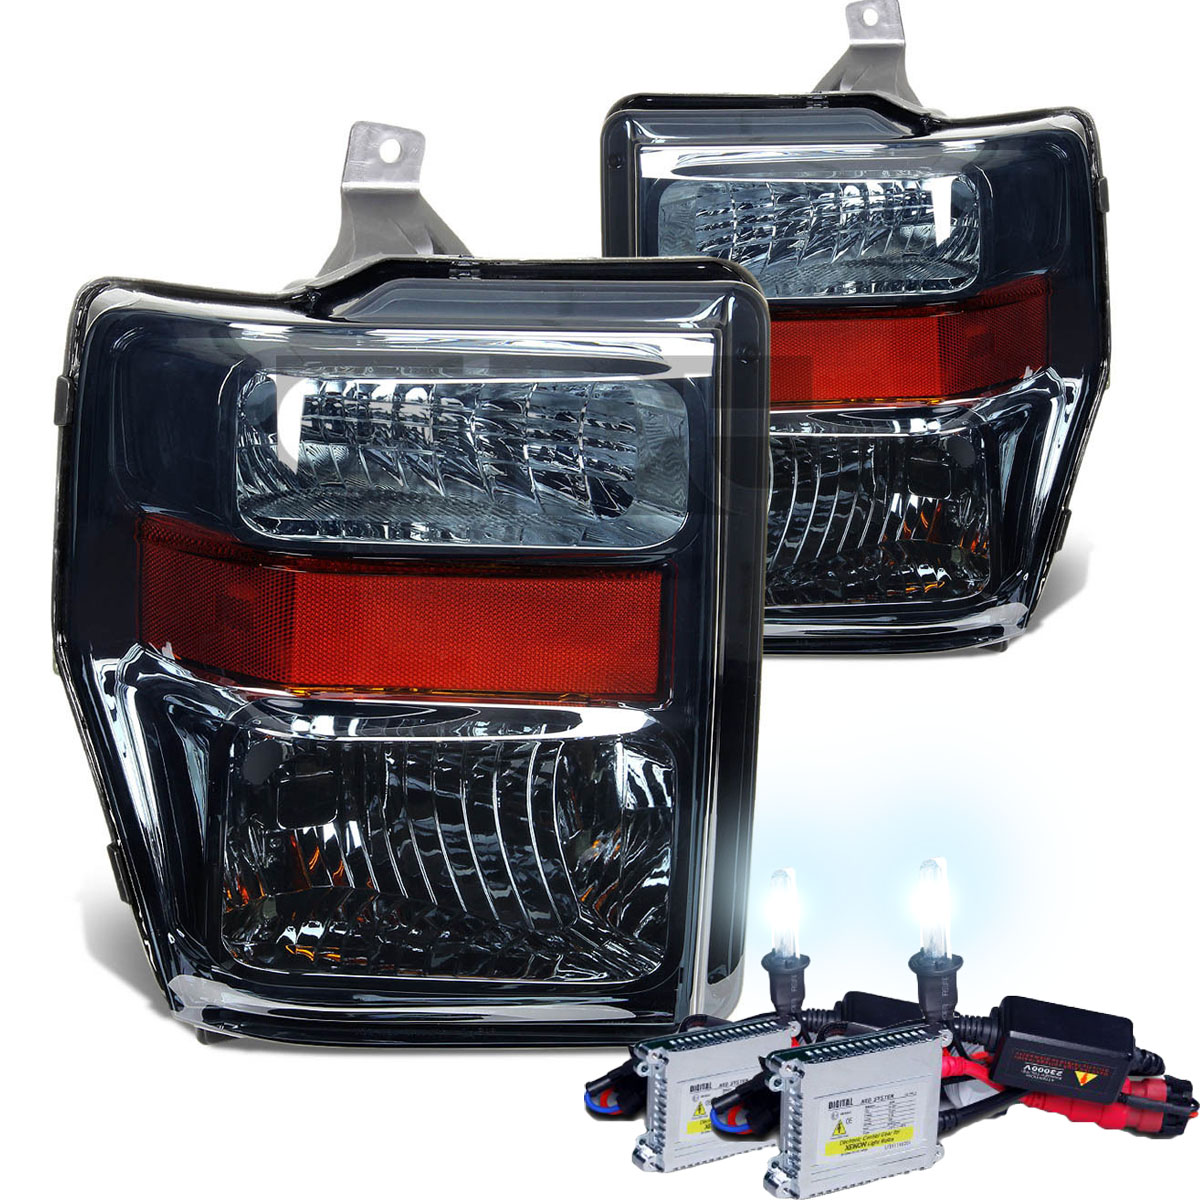 2008 Ford F350 Headlight Wiring Diagrams Fog Light Diagram Hid Xenon 2010 F250 Superduty Crystal